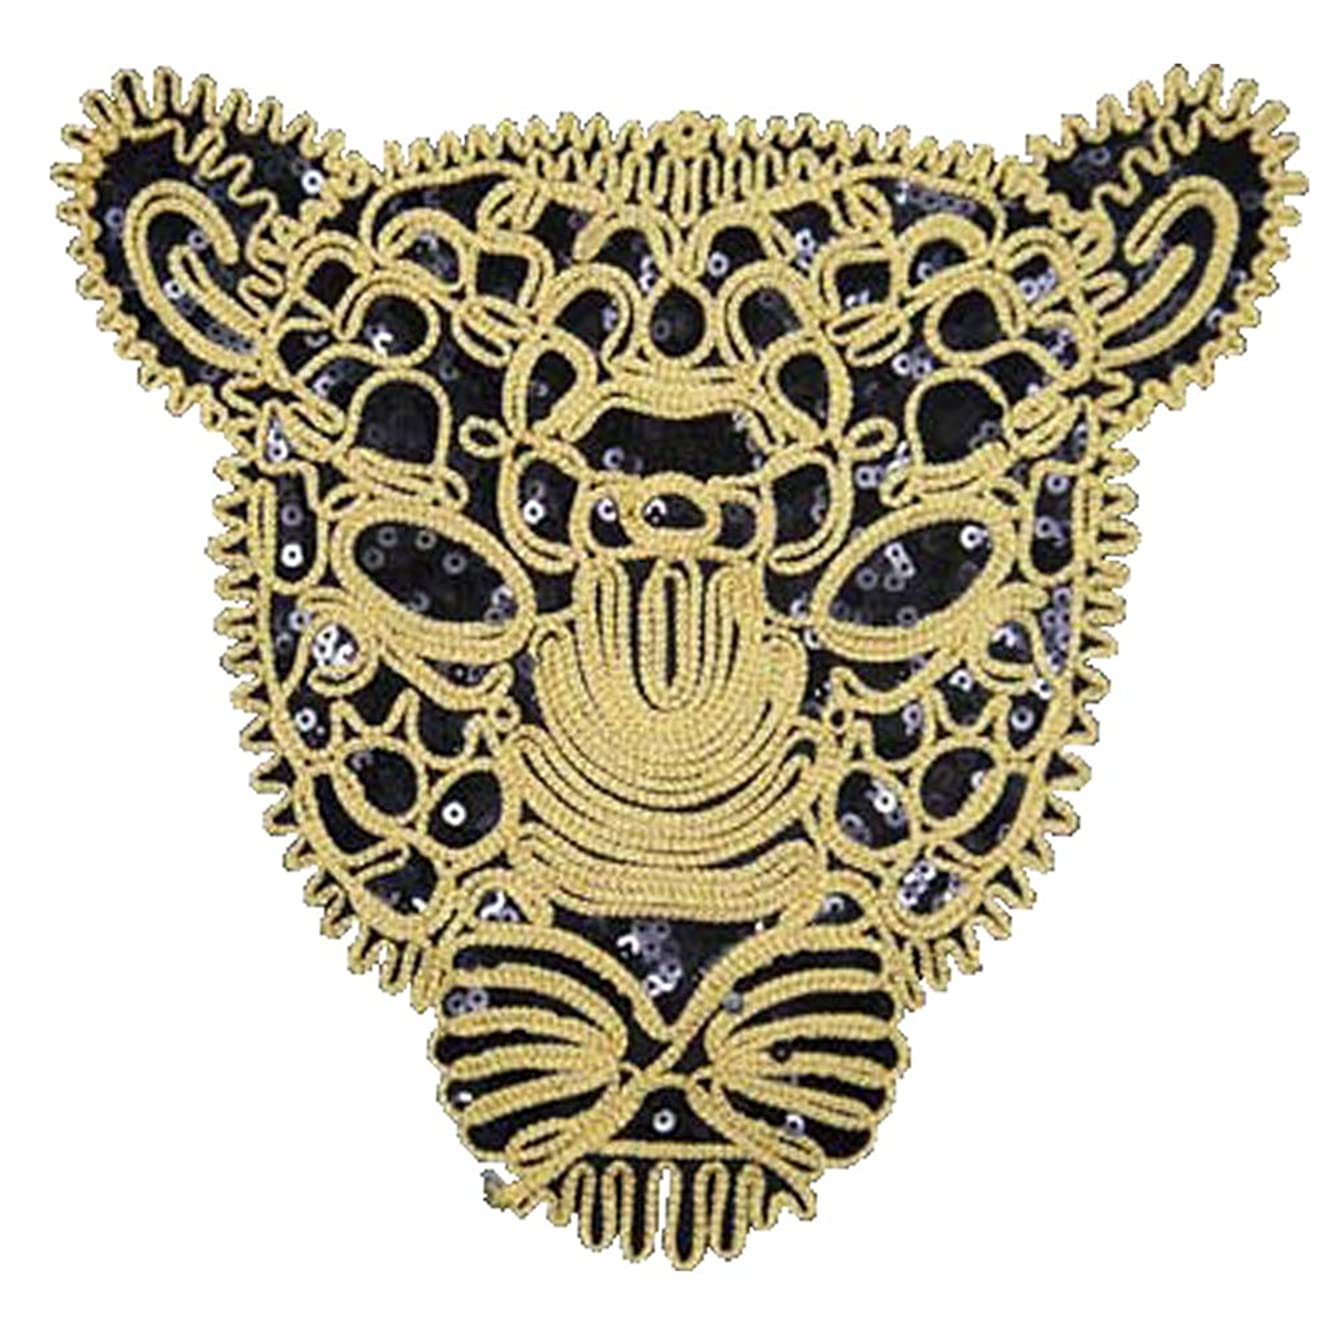 Artem Leopard Head Patch 1Pcs Black Sequins Sew on Patch Rope Embroidered Sequins Pattern Cloth Patch Applique Stickers